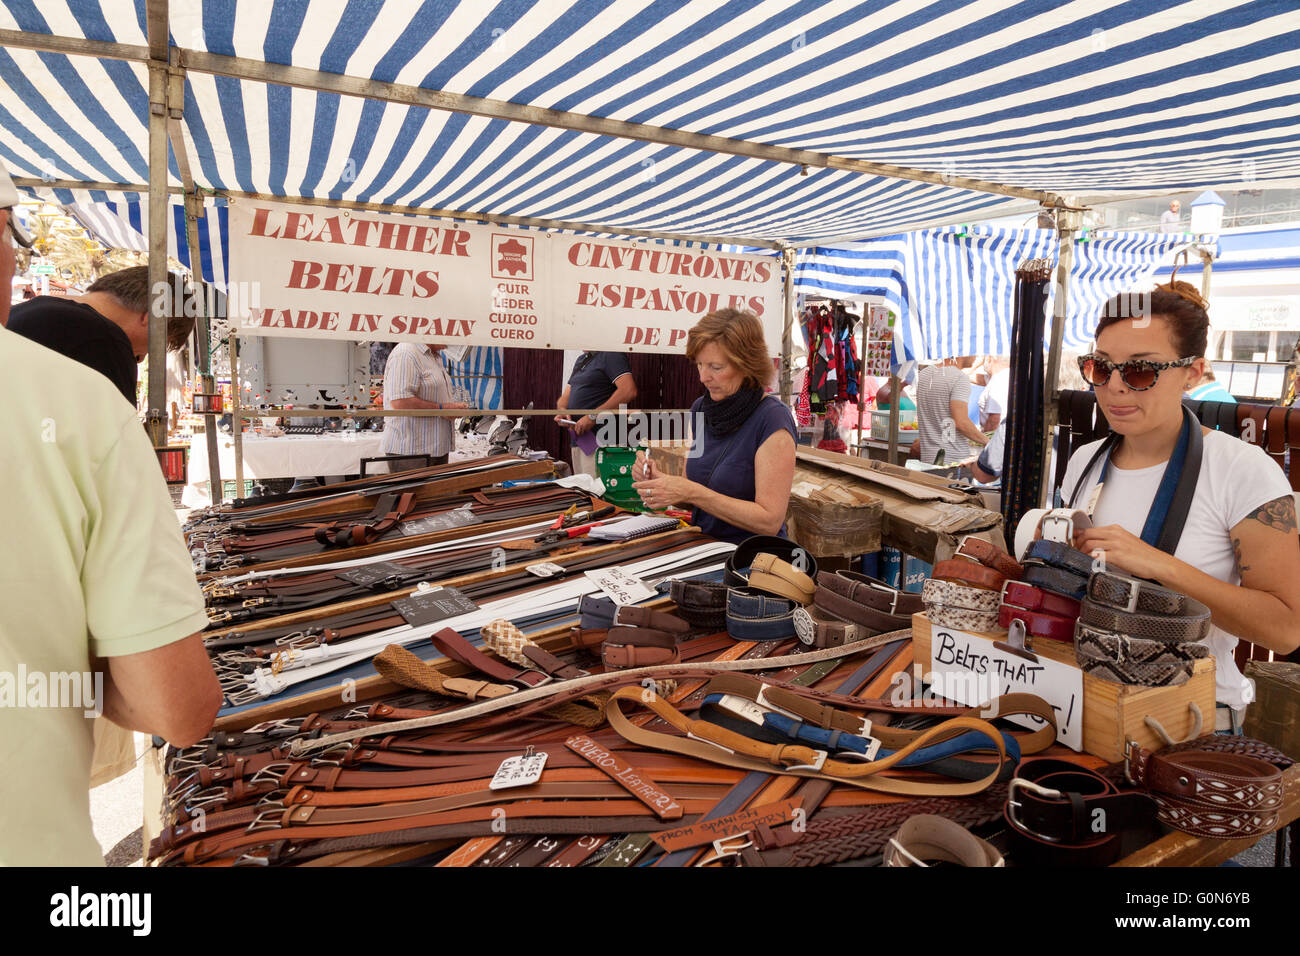 Leather belts stall and stallholder selling to shoppers, Estepona Market, Estepona, Andalusia, Spain Europe - Stock Image